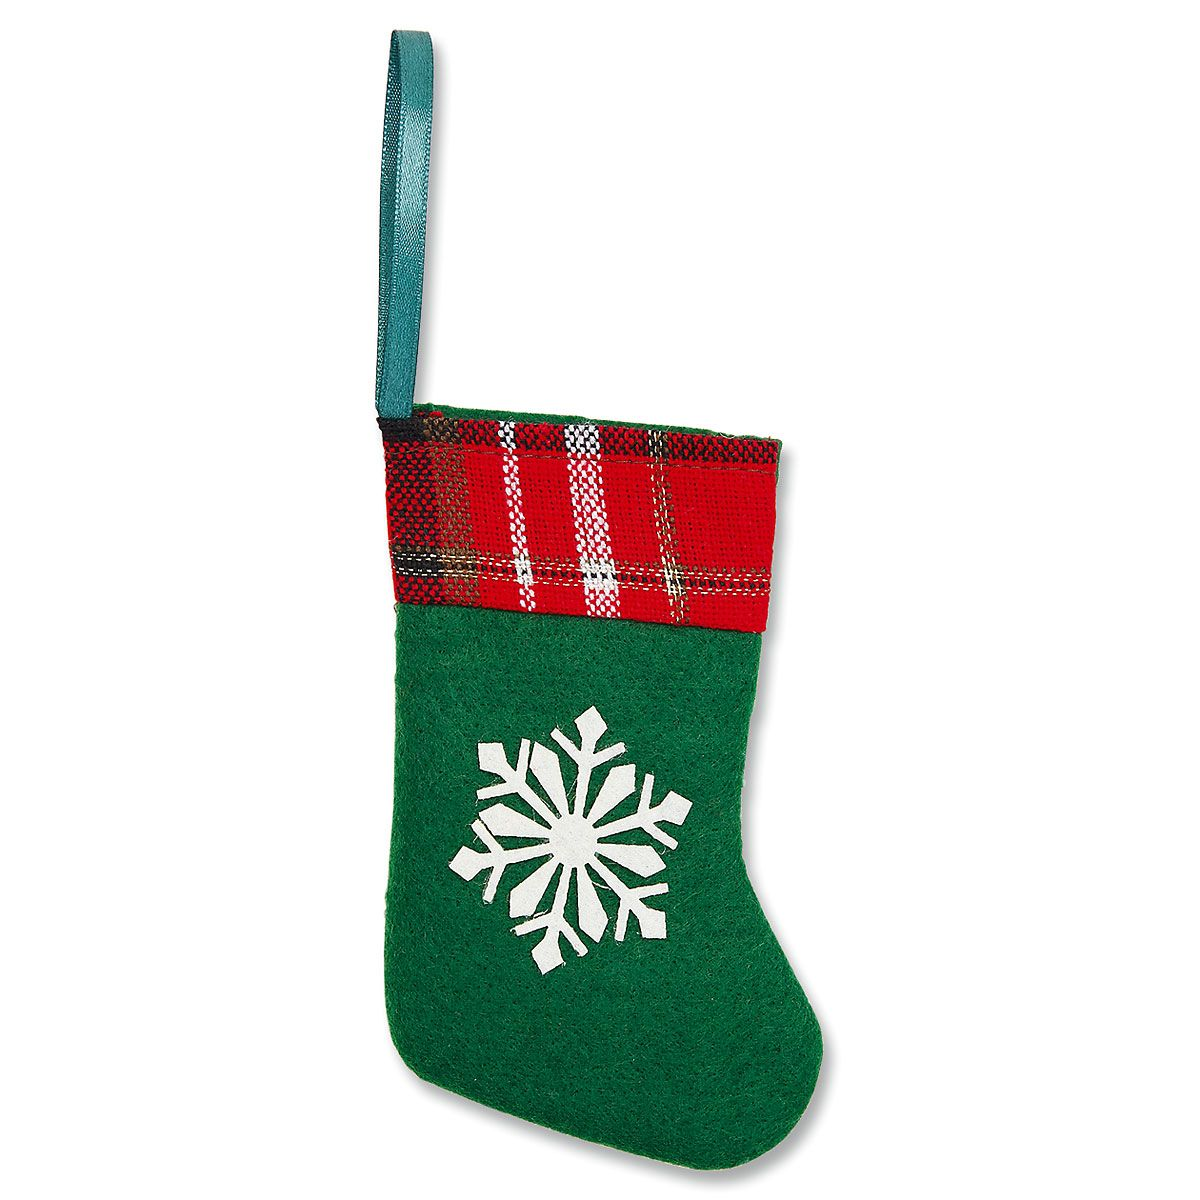 Snowflake and Tree Stocking Gift Card Holders